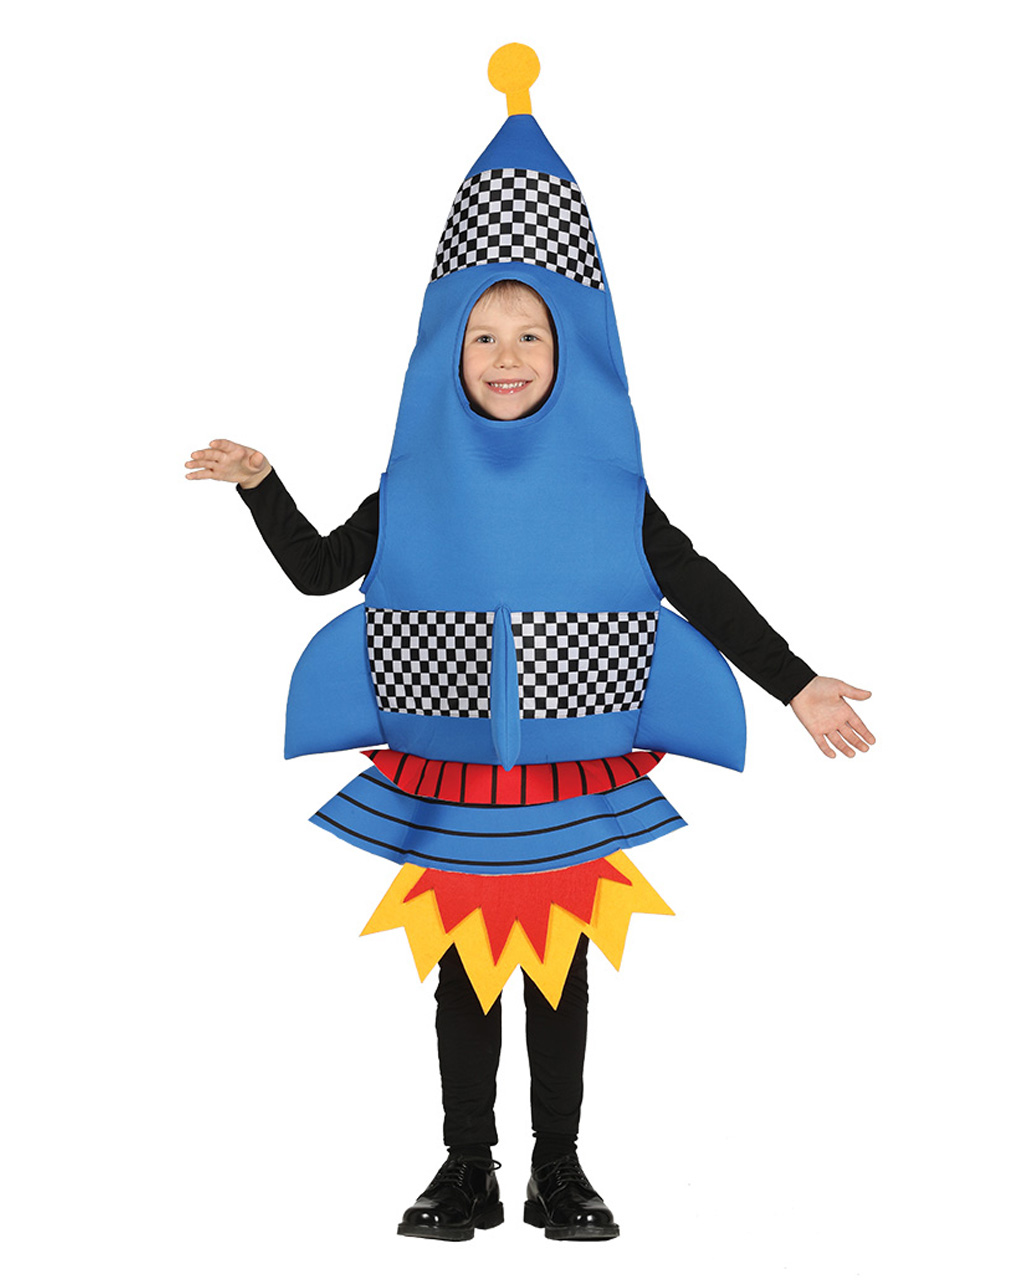 asteroid costume for kids - HD1027×1280